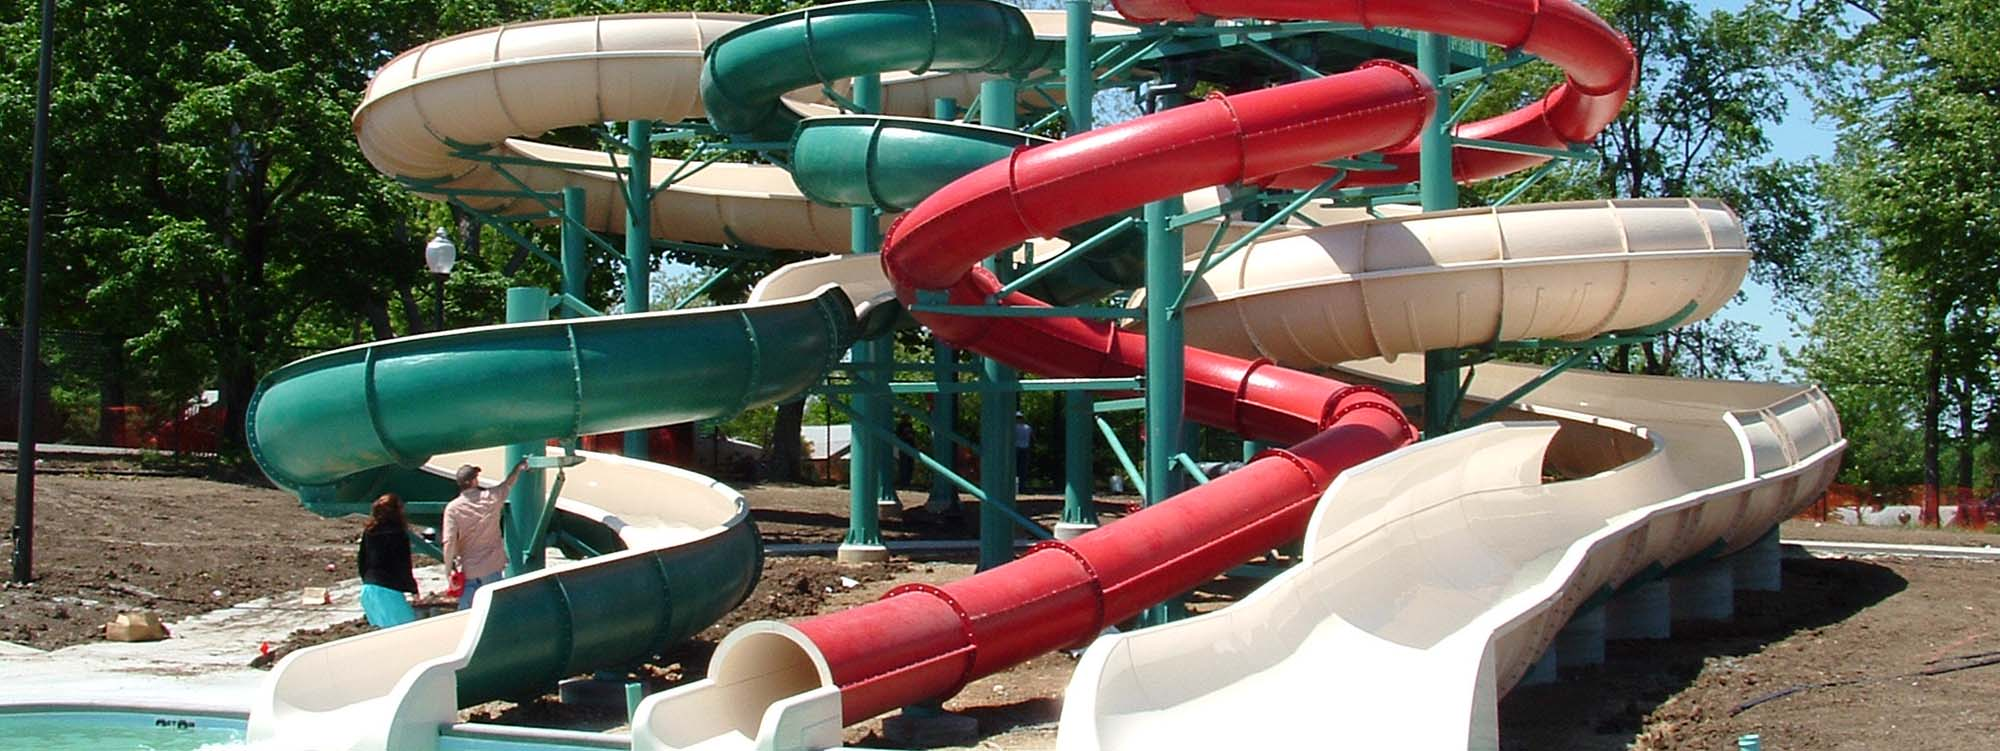 HOW TO START A WATERPARK